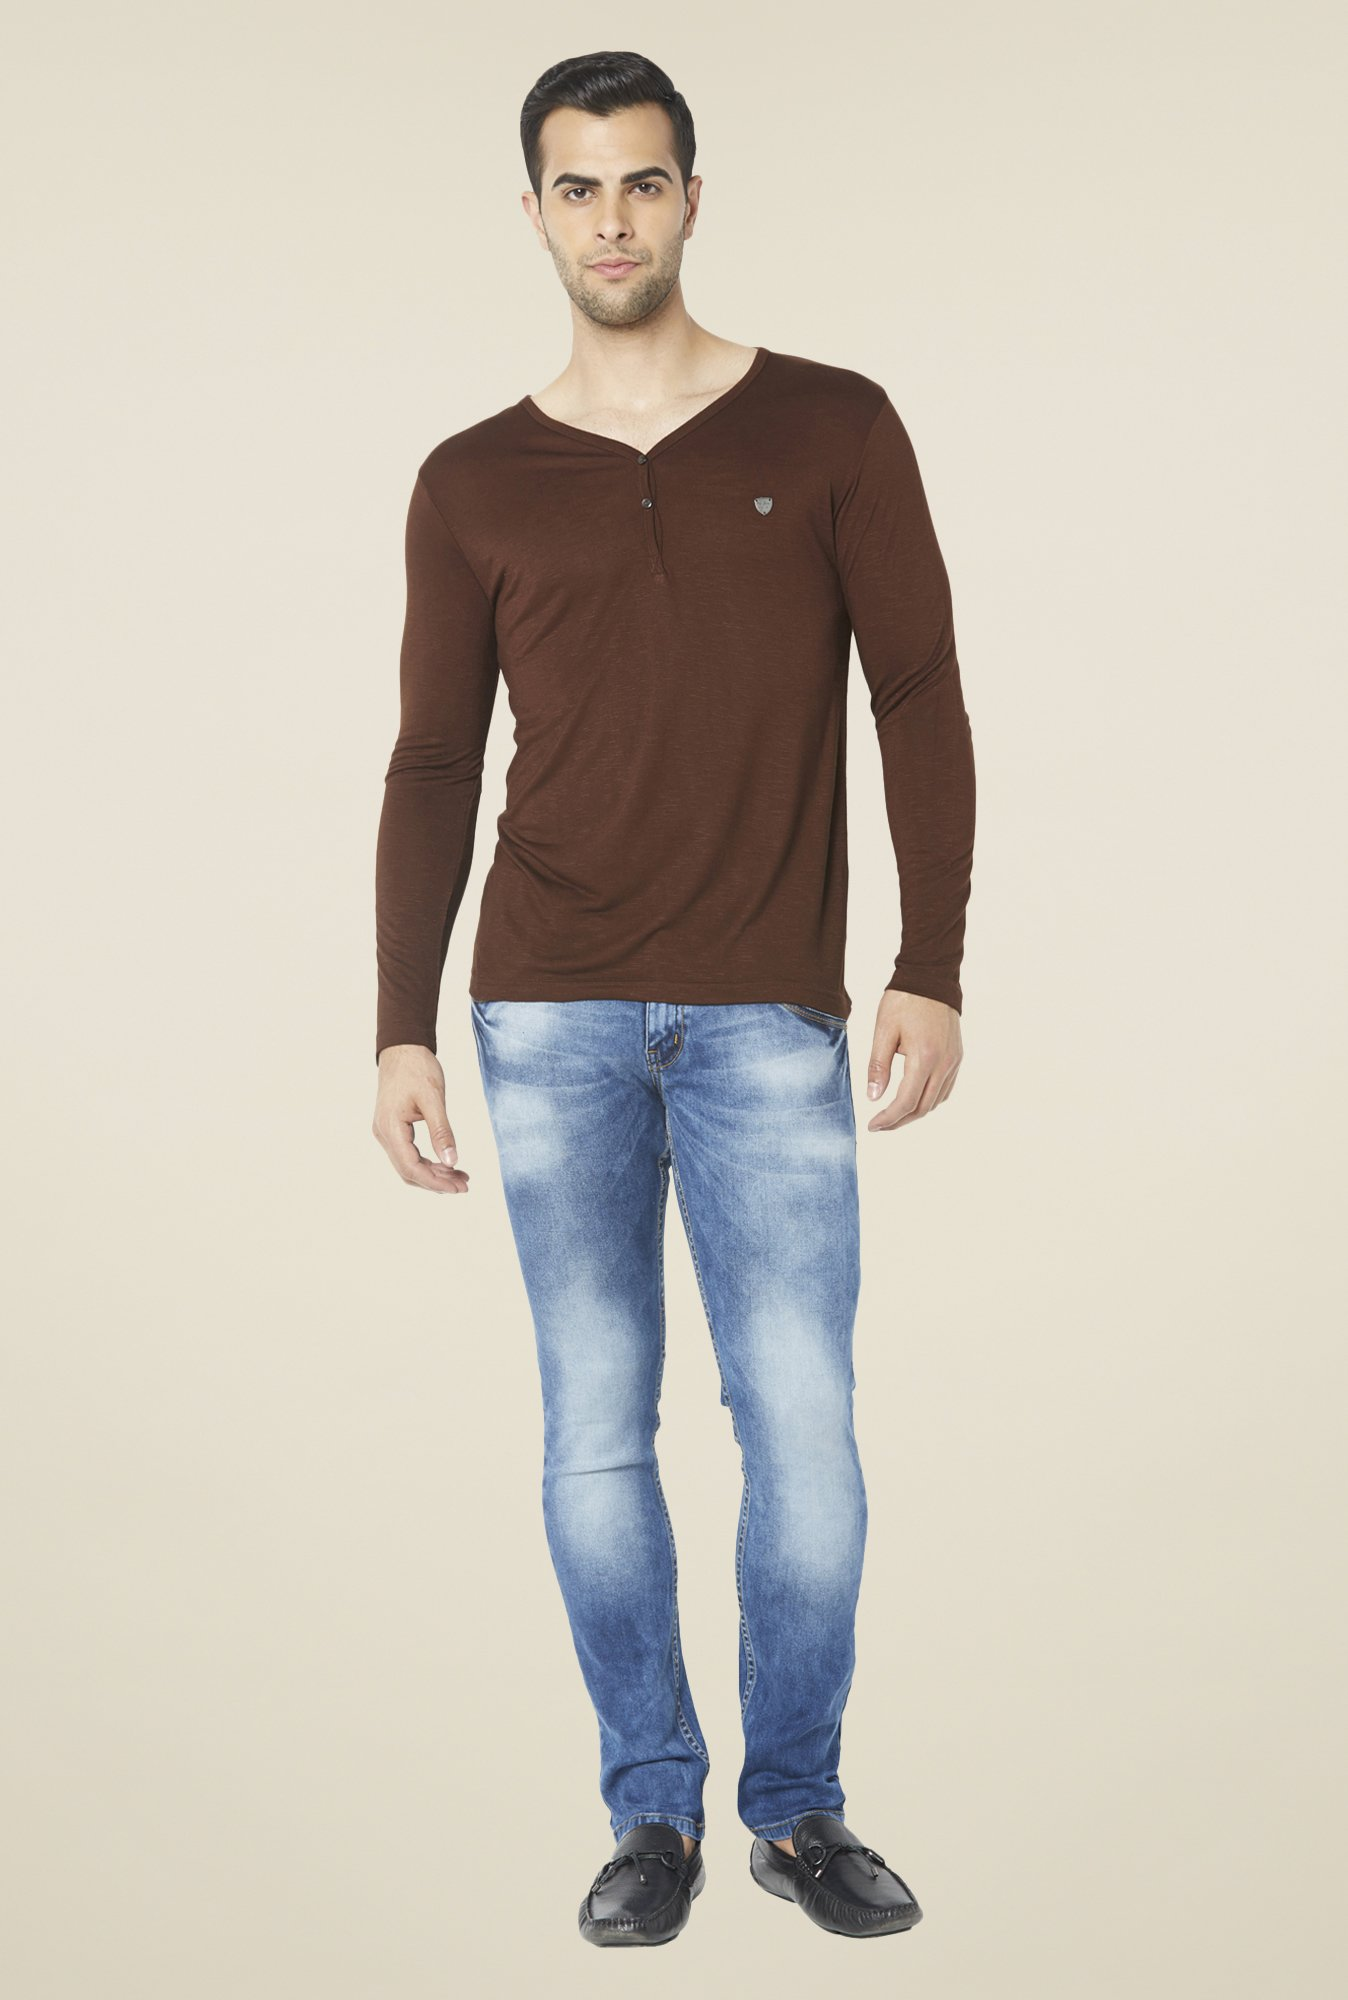 Globus Brown Solid T Shirt